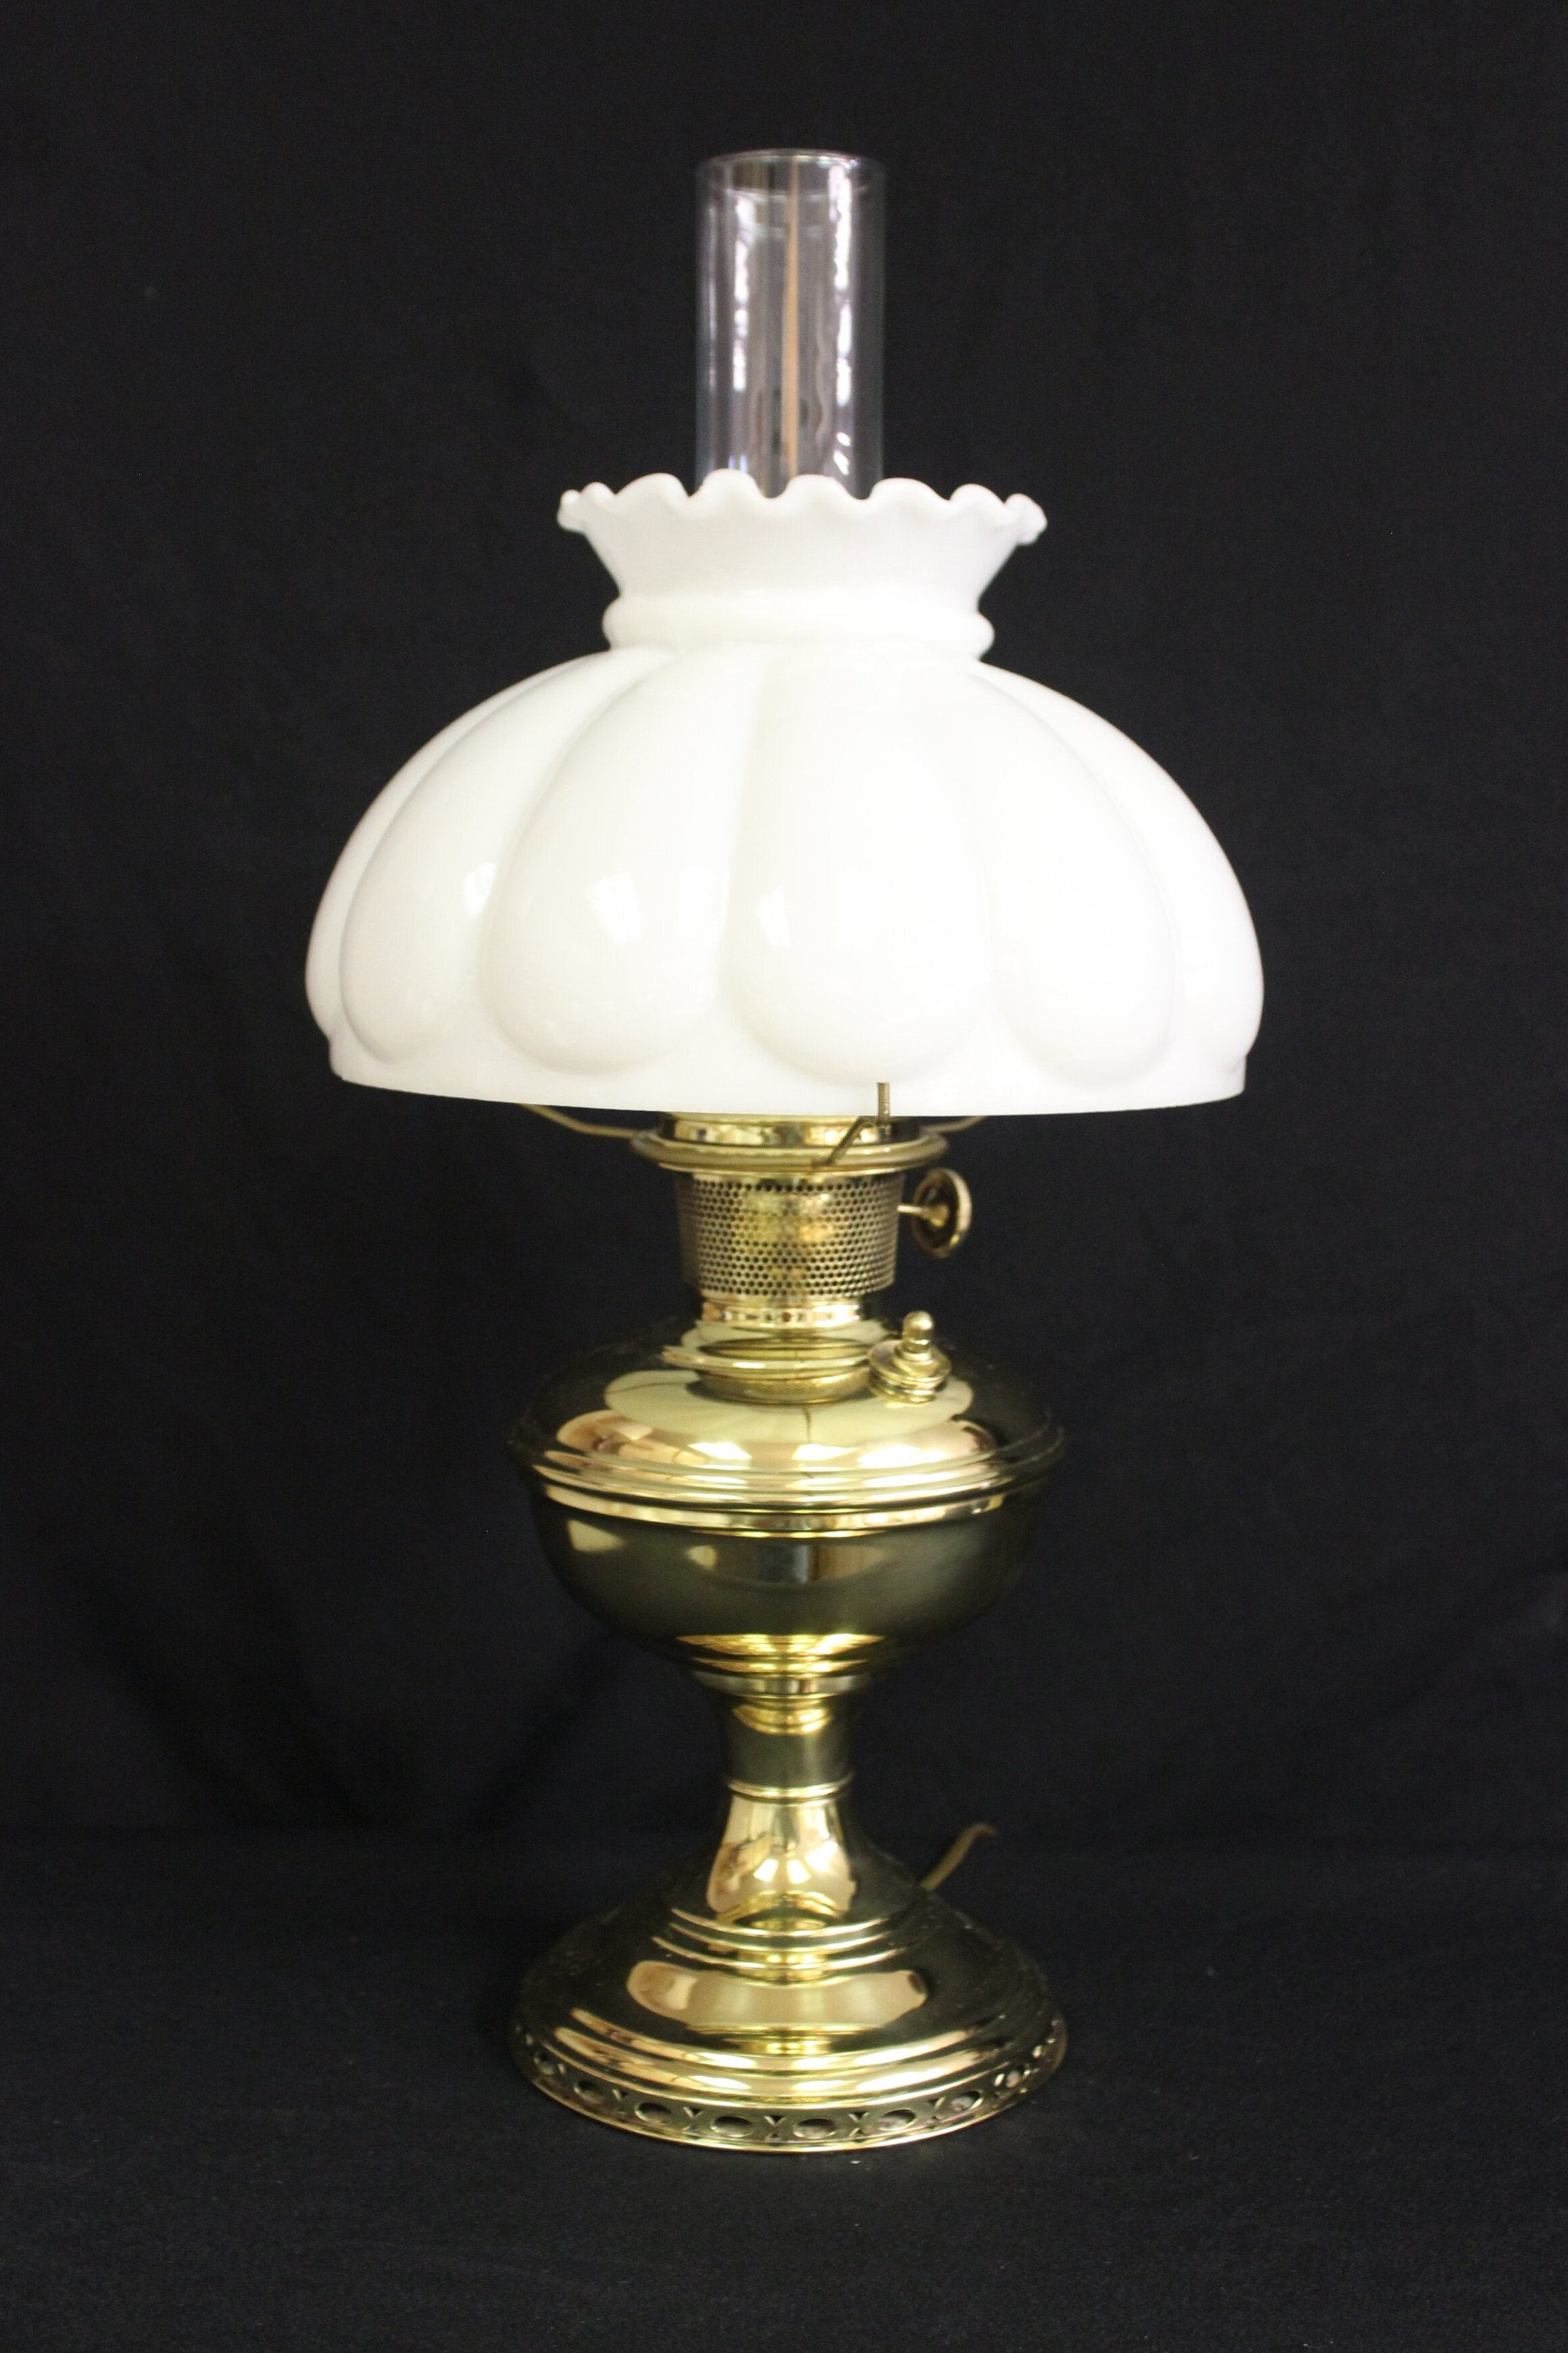 """Original Aladdin Model #9 Brass Lamp.  This lamp was originally a kerosene lamp, and was made by Aladdin from 1920-1922.    The restoration work includes: Electrifying, Polish & Lacquer, New glass chimney and new 10 Opal Glass shade (Shade made in the US).    The lamp is wired with high quality electrical components. Gold colored lamp wire extending approximately 7 feet from the wood base to the plug.    This lamp stands 21"""" high.  $295.00, plus shipping"""